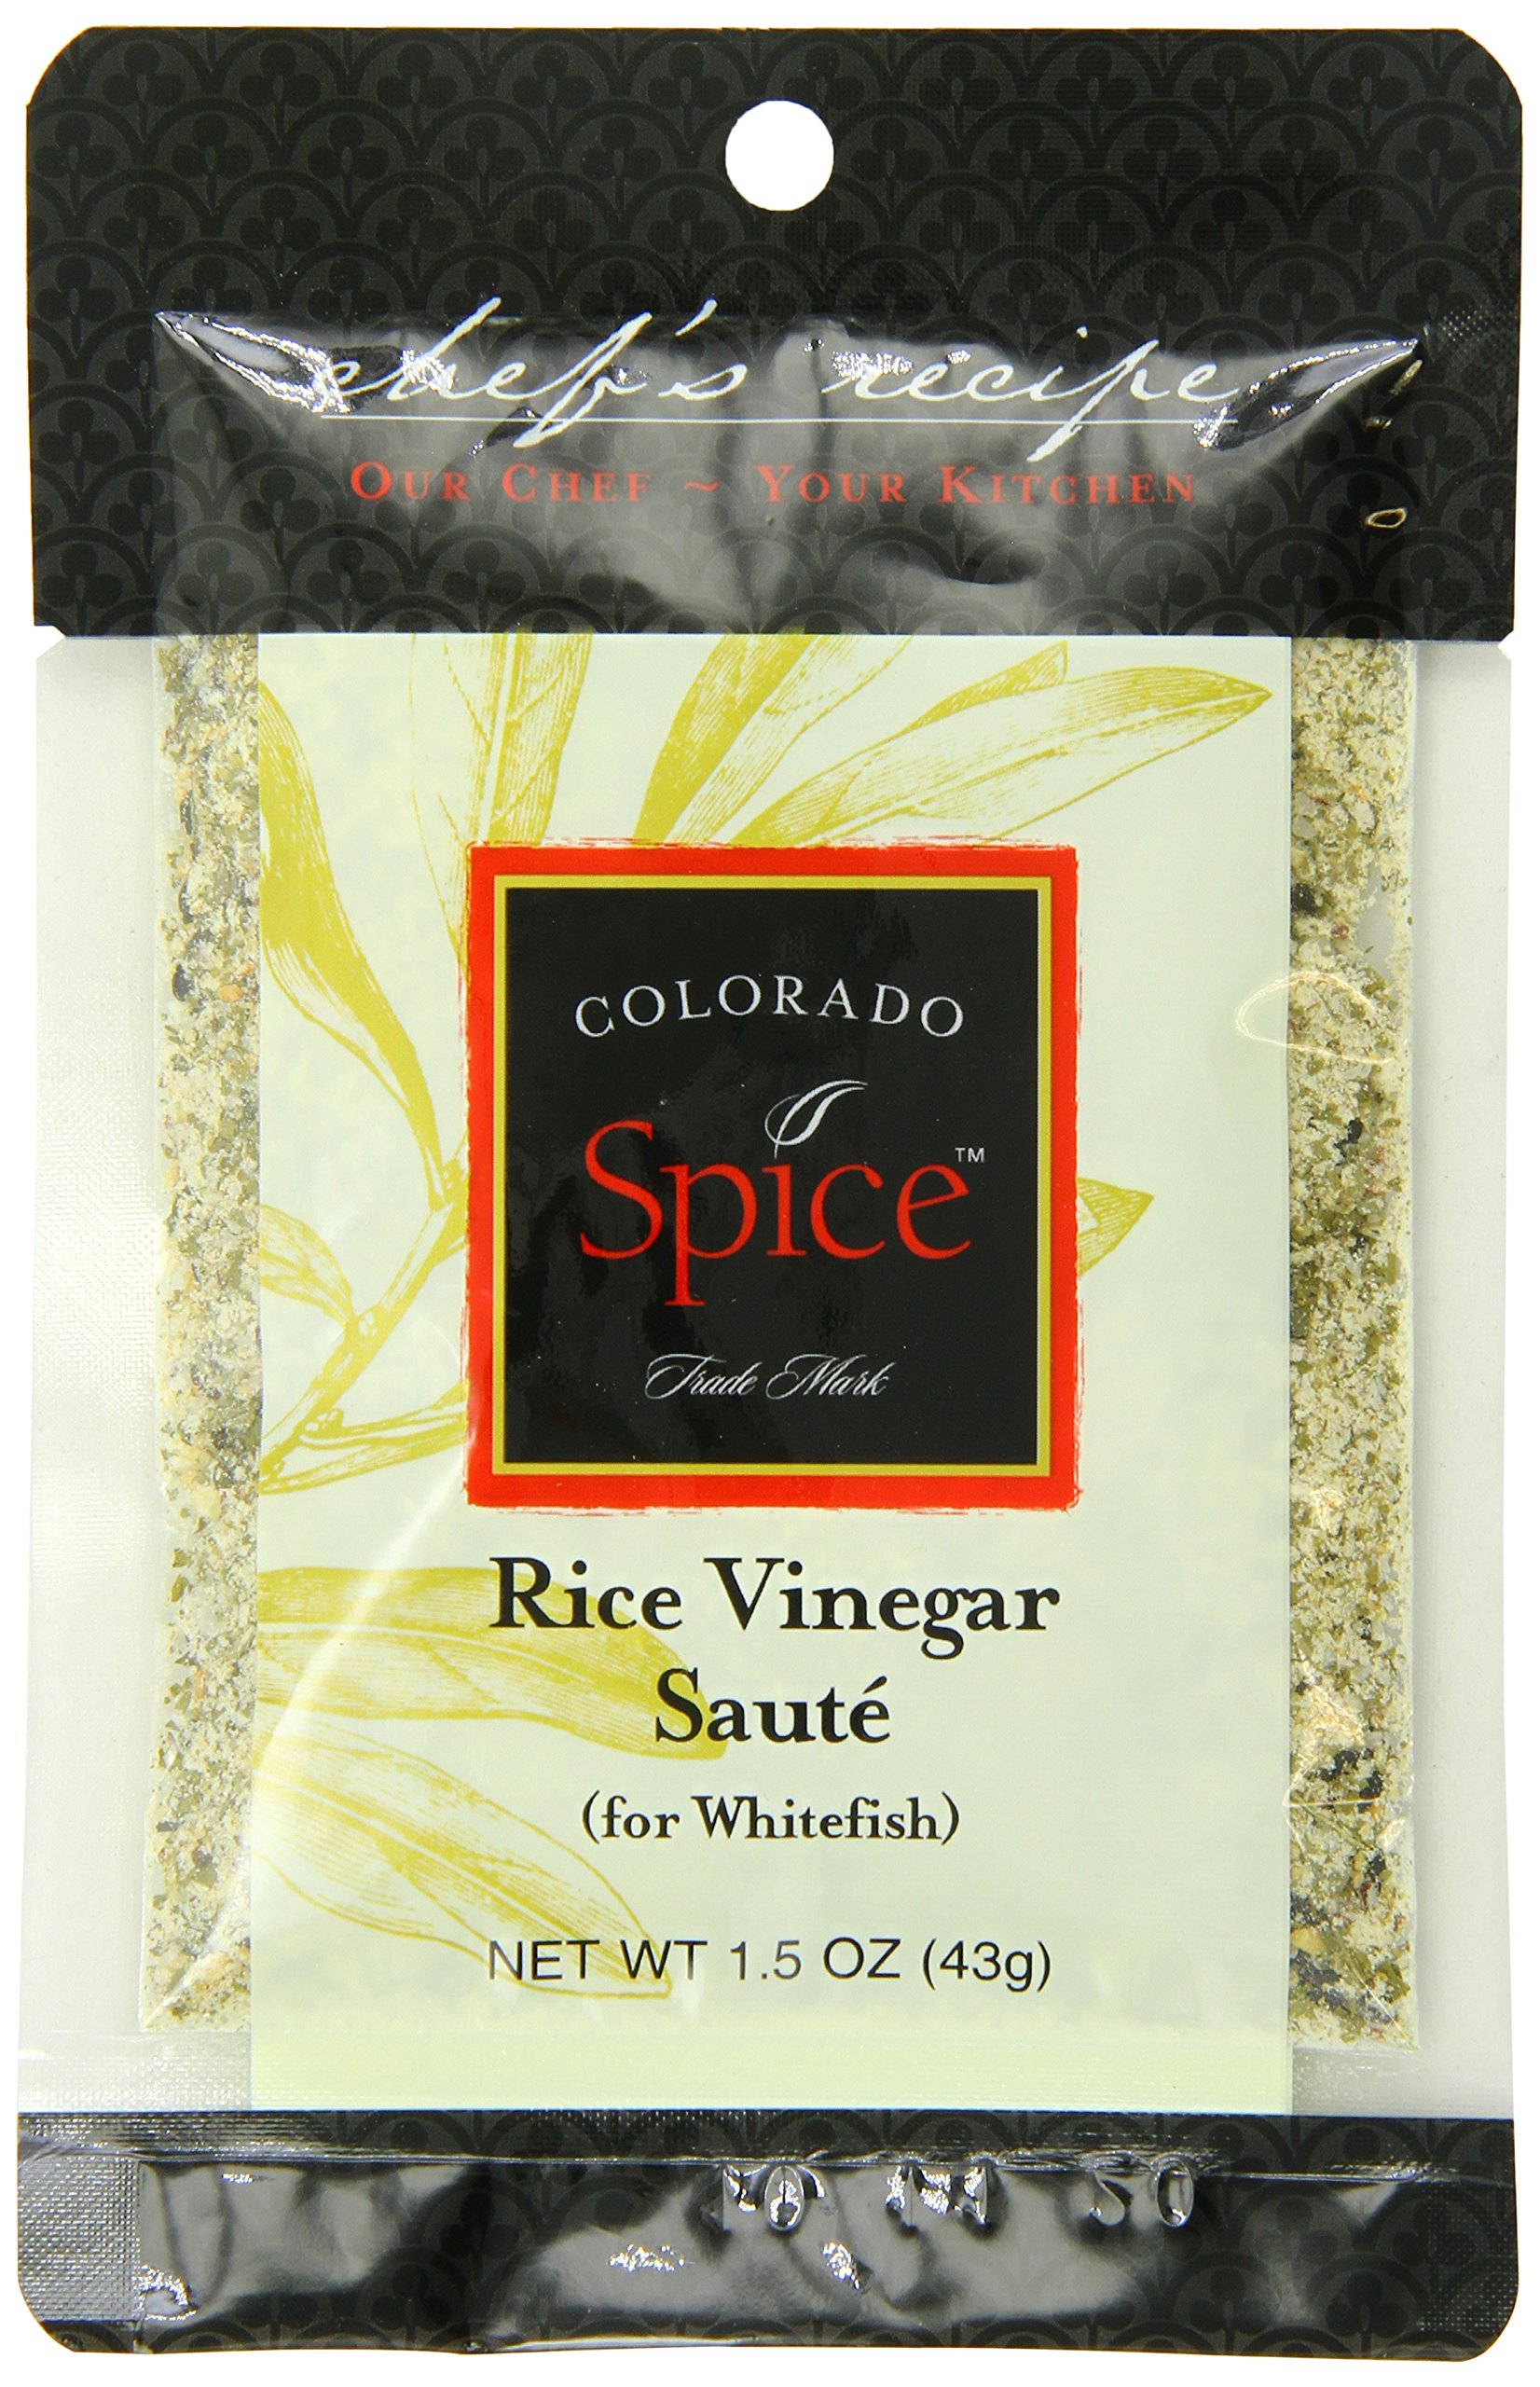 Colorado Spice Company, Seafood Spice, Rice Vinegar Saute for Whitefish, 1.5-Ounce Packet  (Pack of 12)